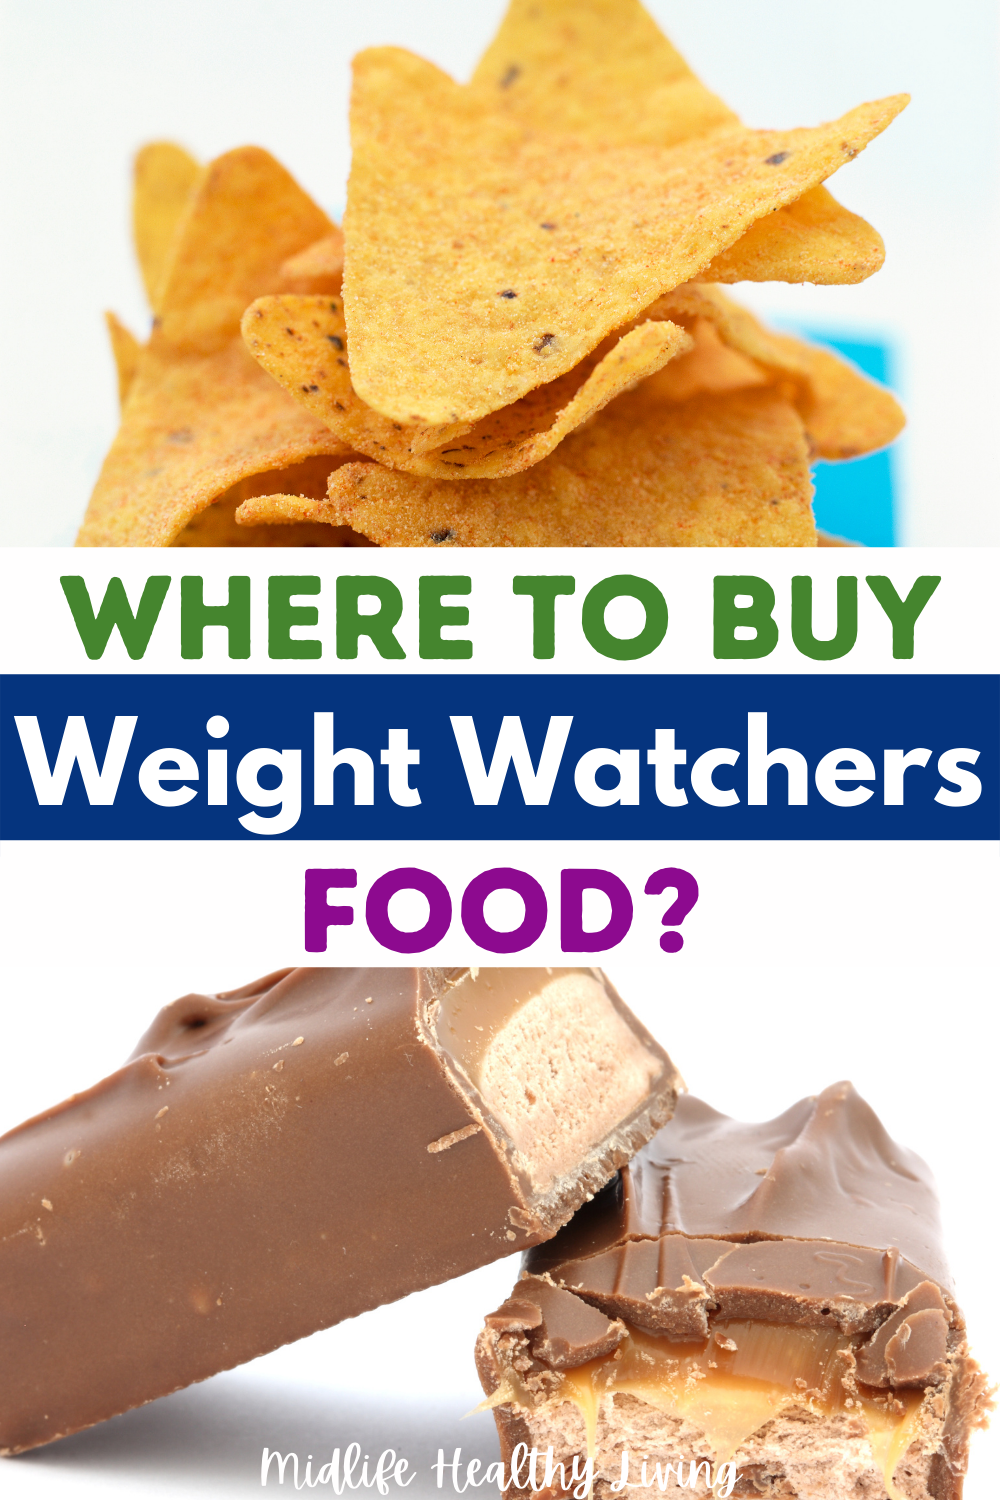 Pin showing the question where to buy weight watchers food.